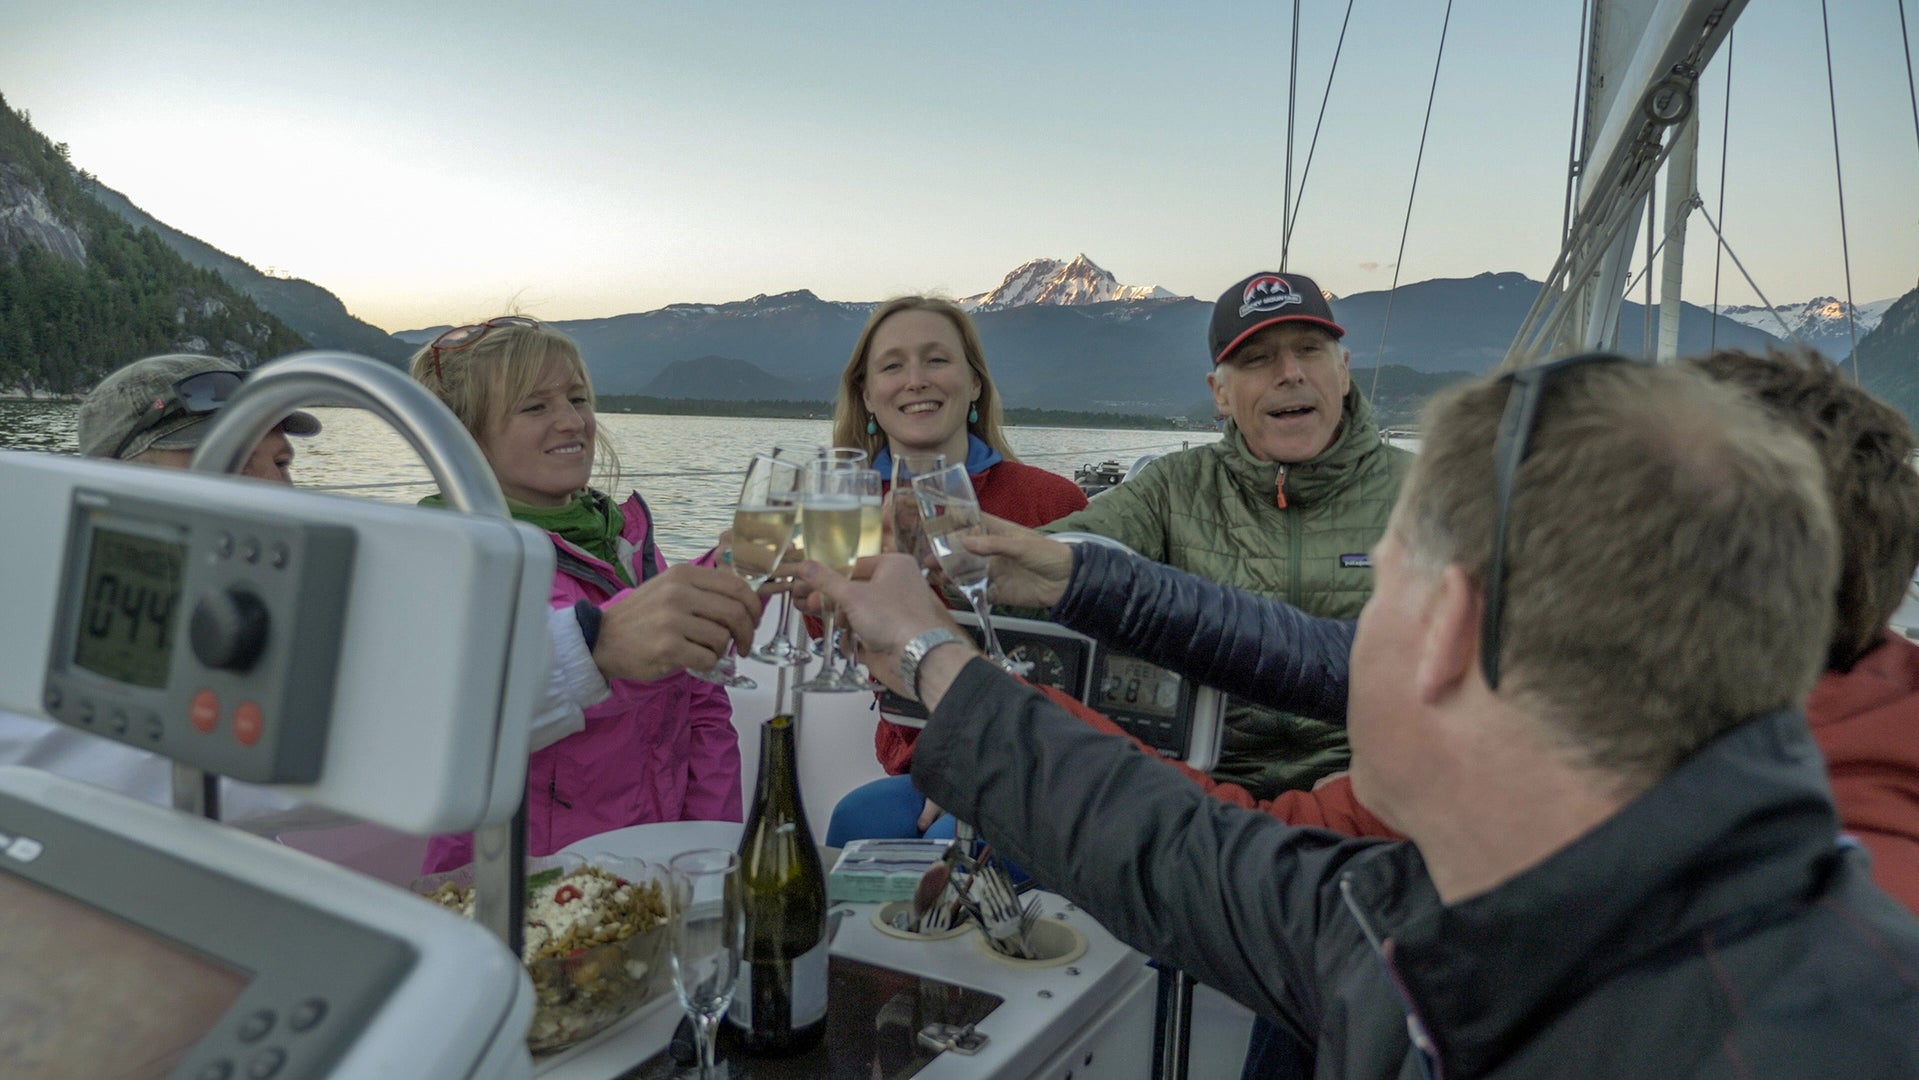 Sunset Sailing & Dinner Cruise in Howe Sound located in Squamish, BC